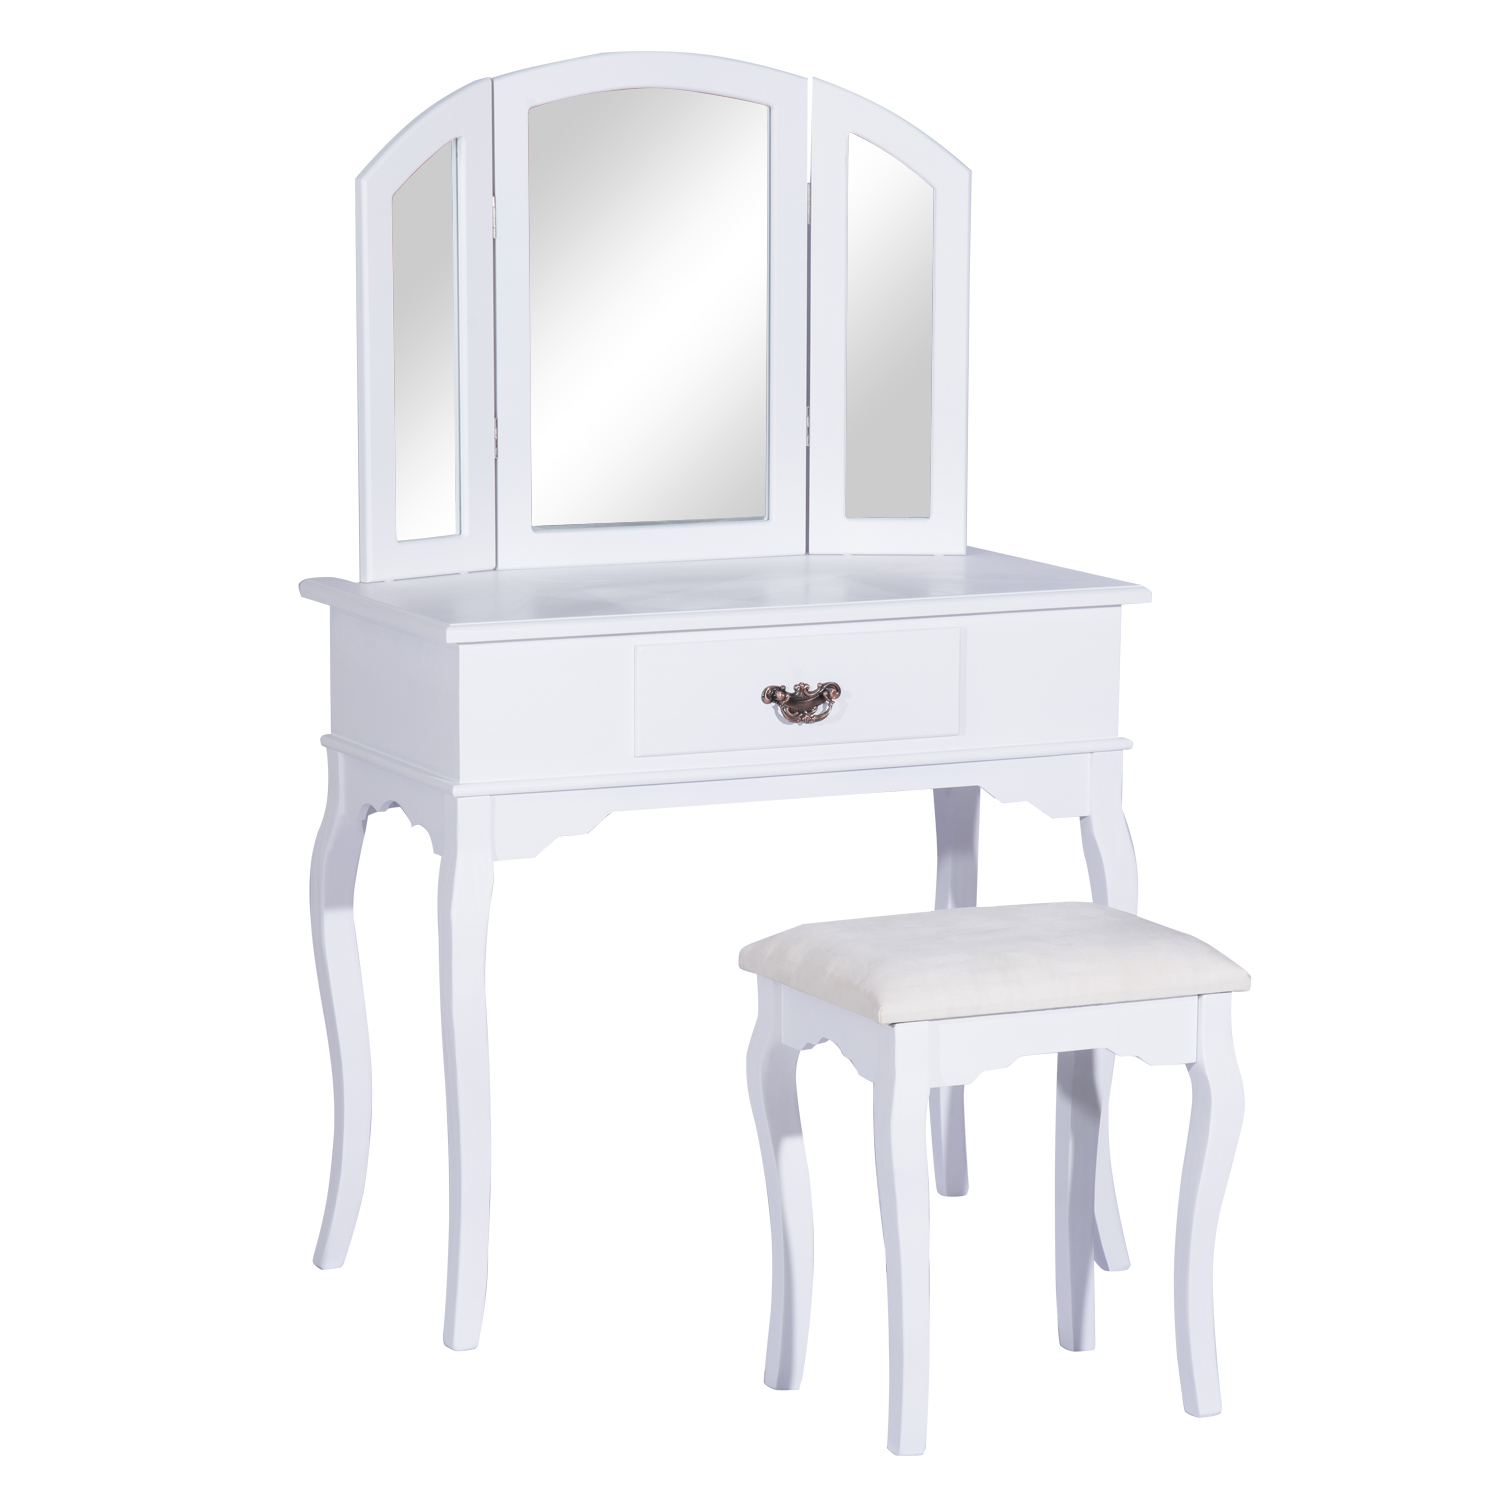 Homcom vanity set wood dressing table stool drawers bedroom makeup mirror white ebay - Stool for vanity table ...